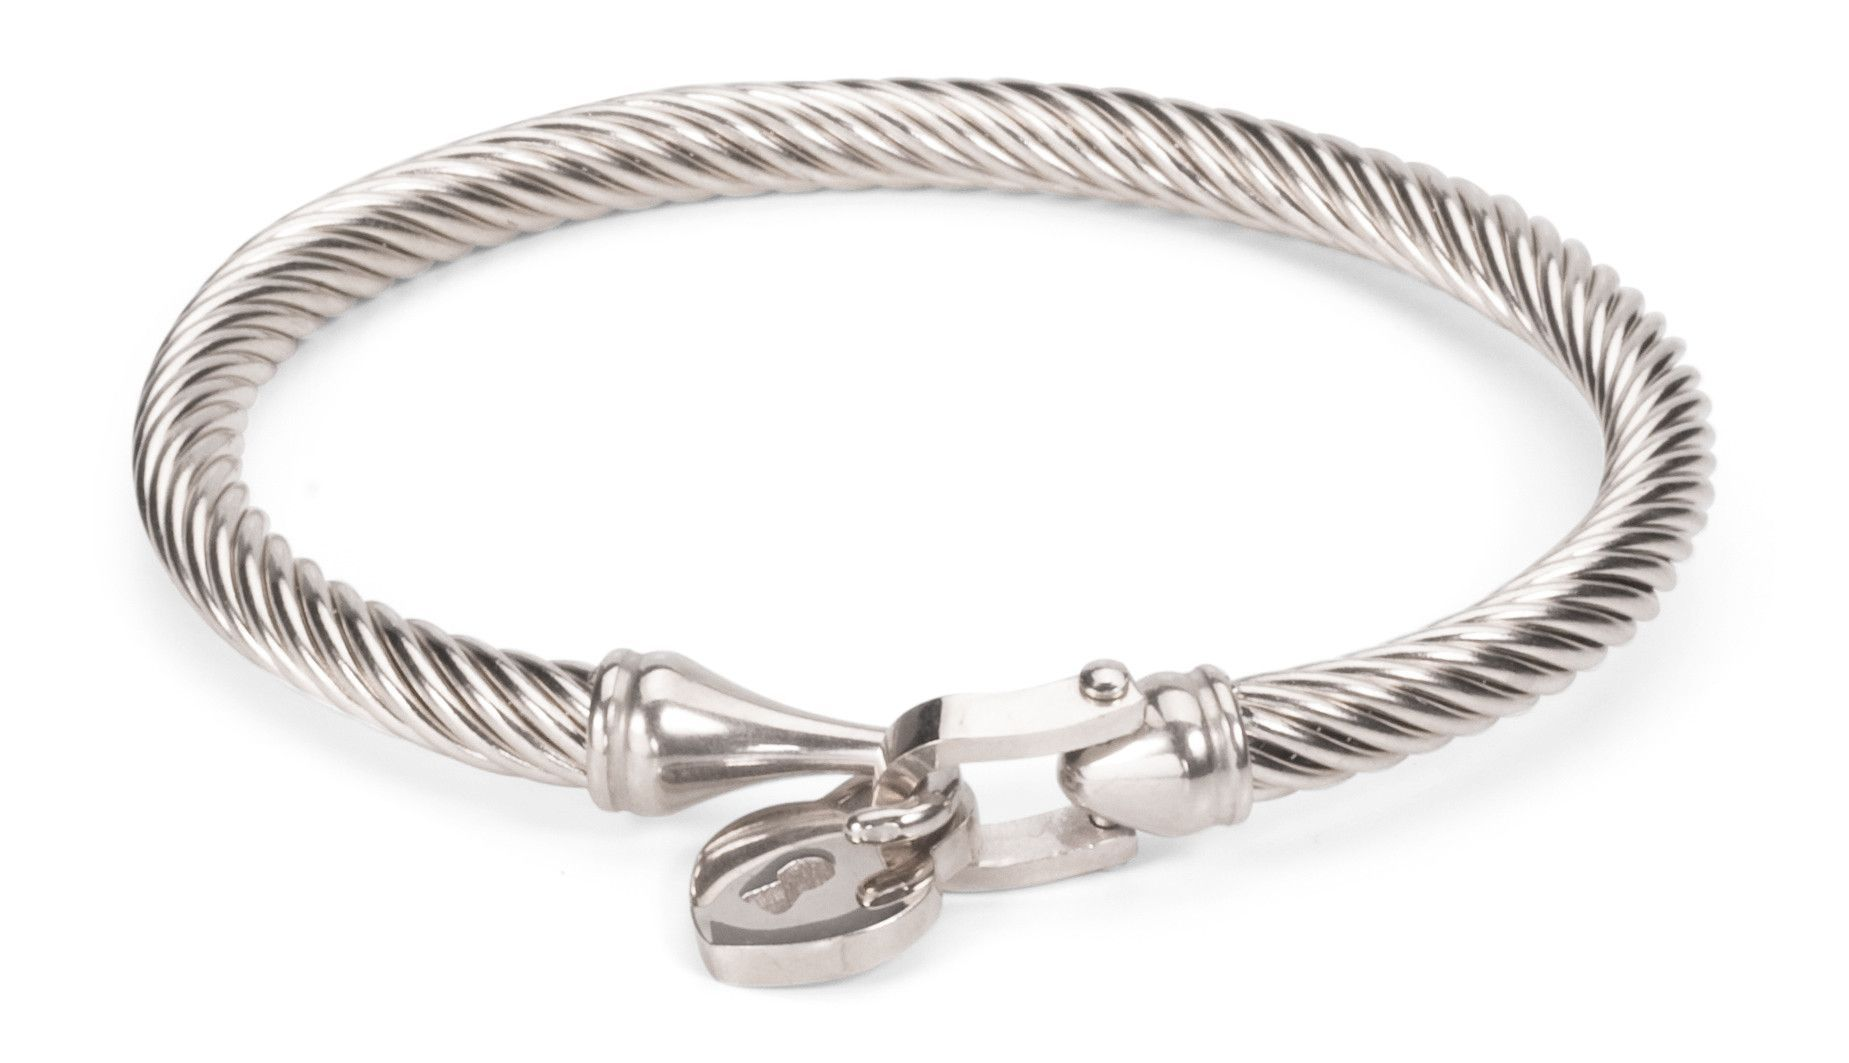 Heart Charm Bracelet with Cable Band Gold & Silver